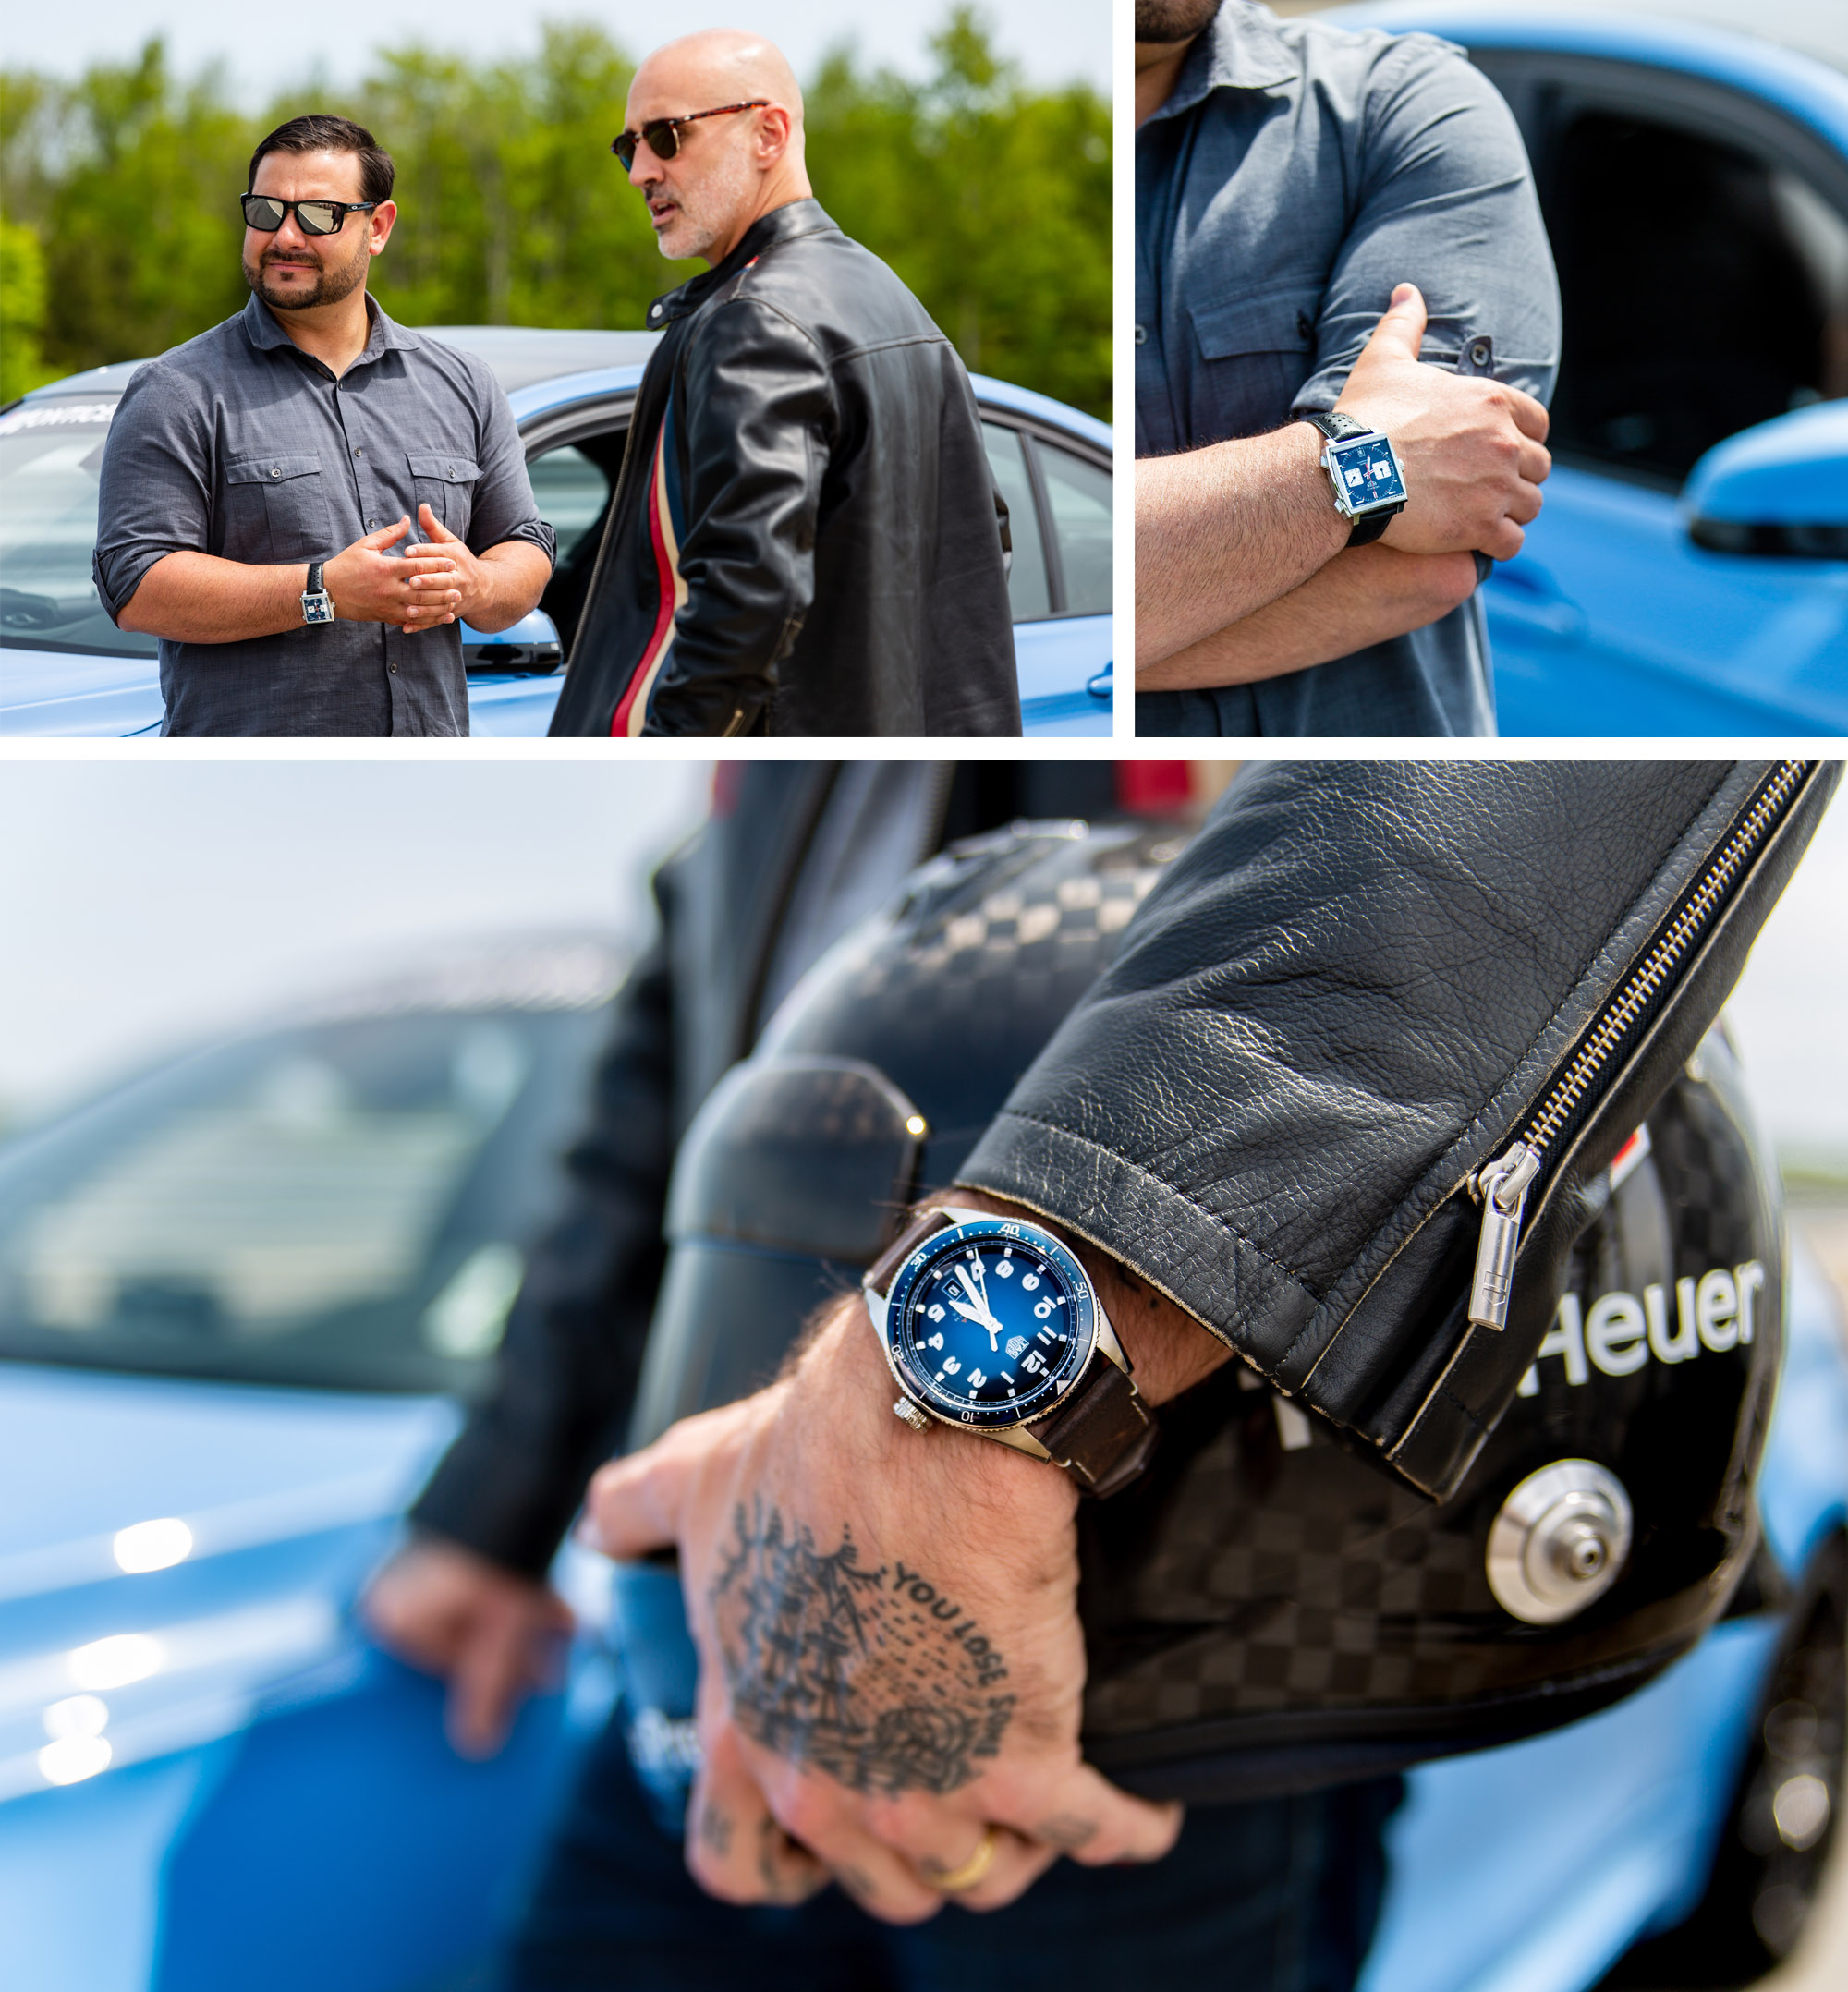 TAG Heuer Autavia Science of Performance Monticello Race Track